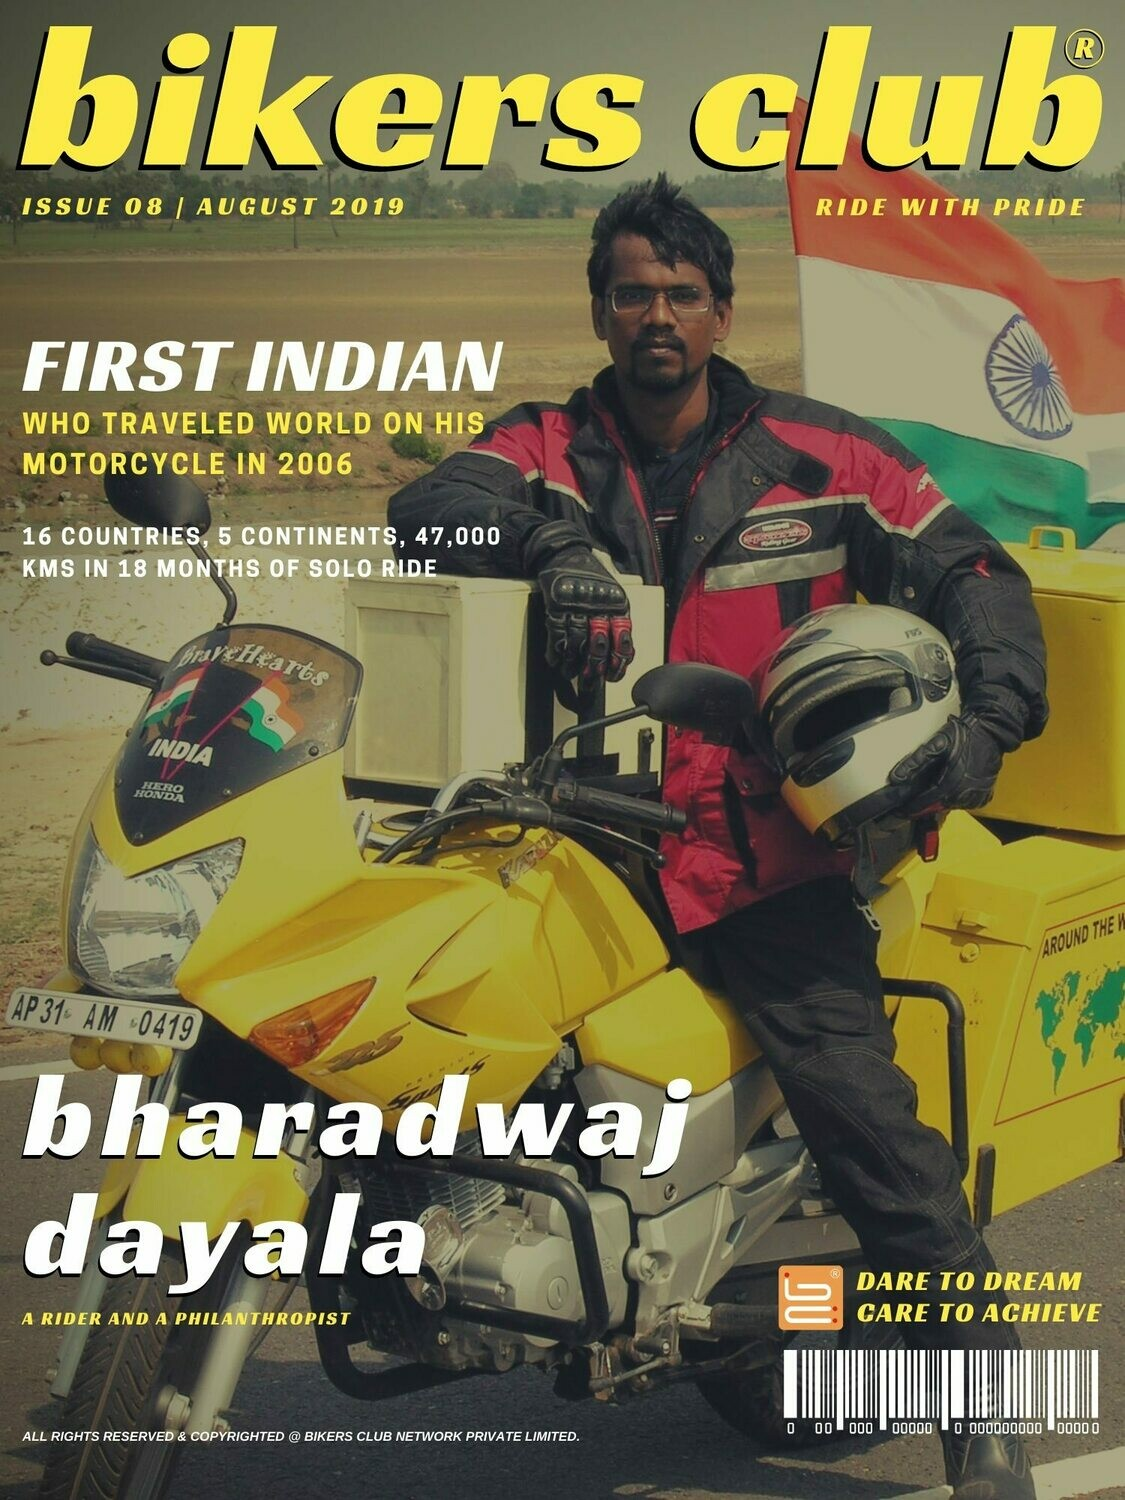 BIKERS CLUB-e-magazine-aug 2019-Bharadwaj Dayala